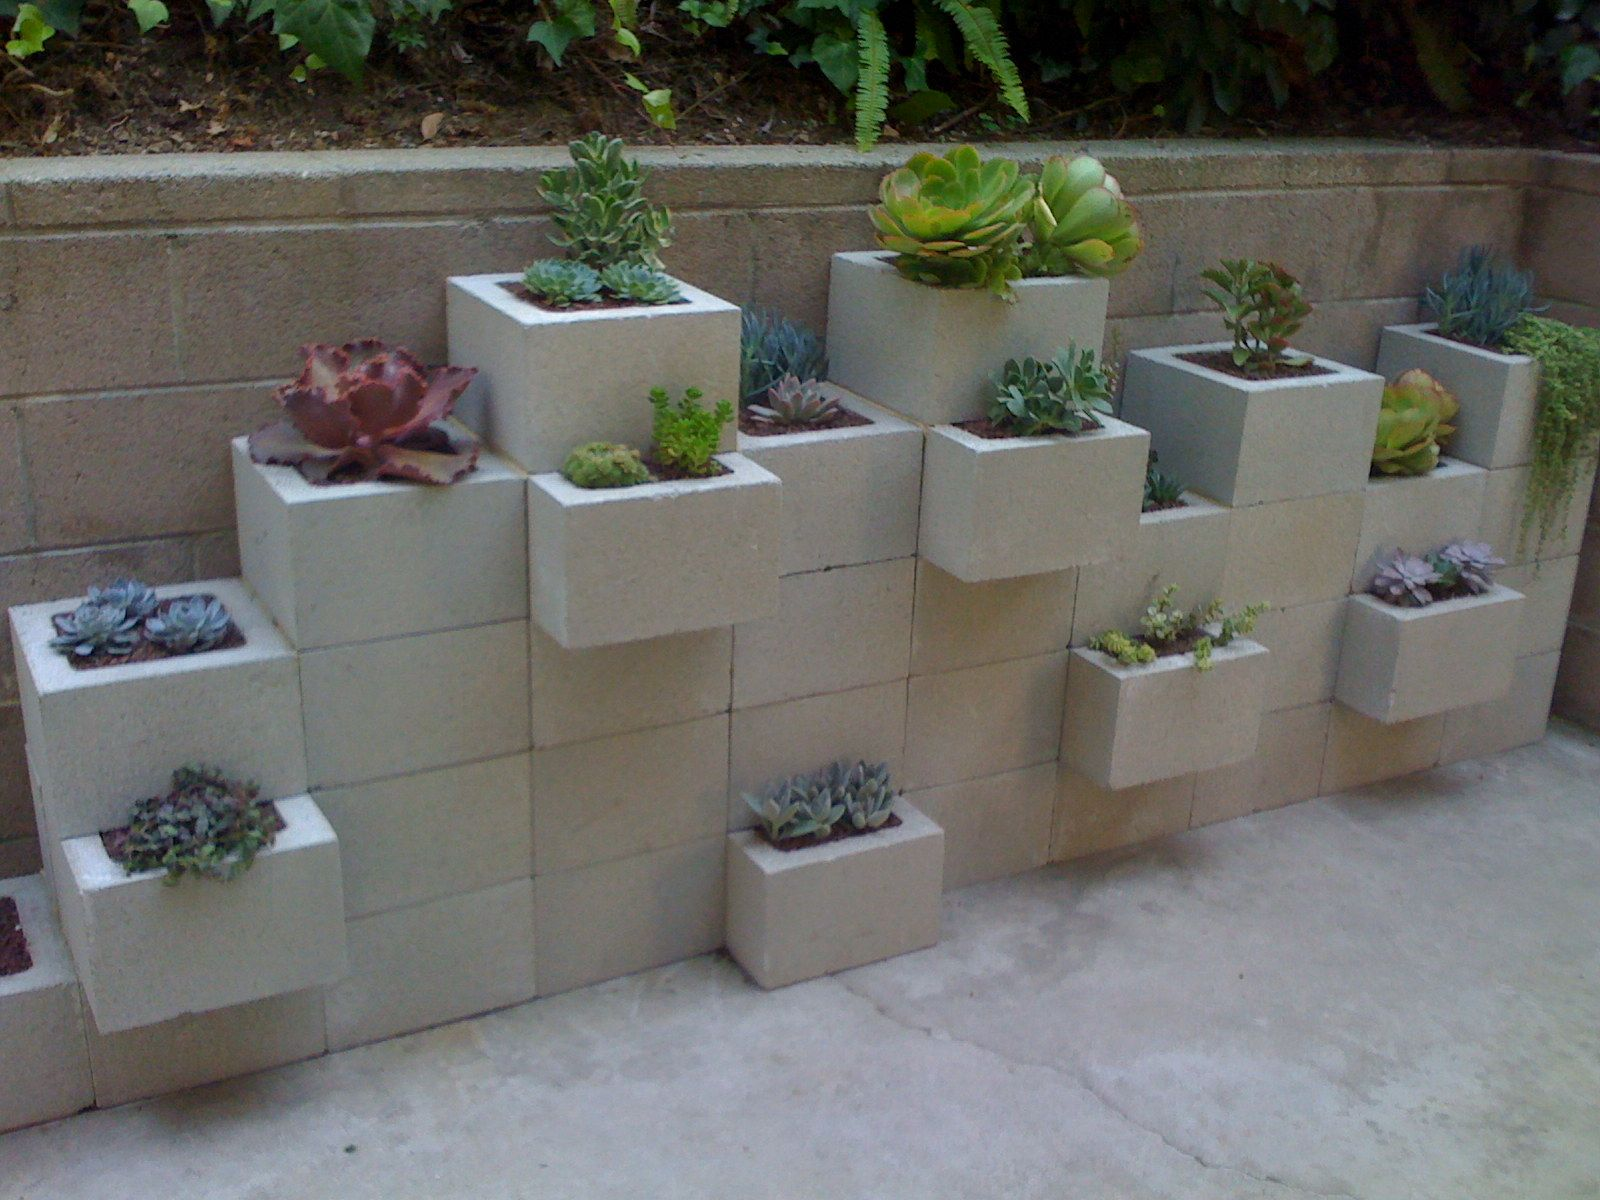 using cinder blocks to make a planter for succulents or